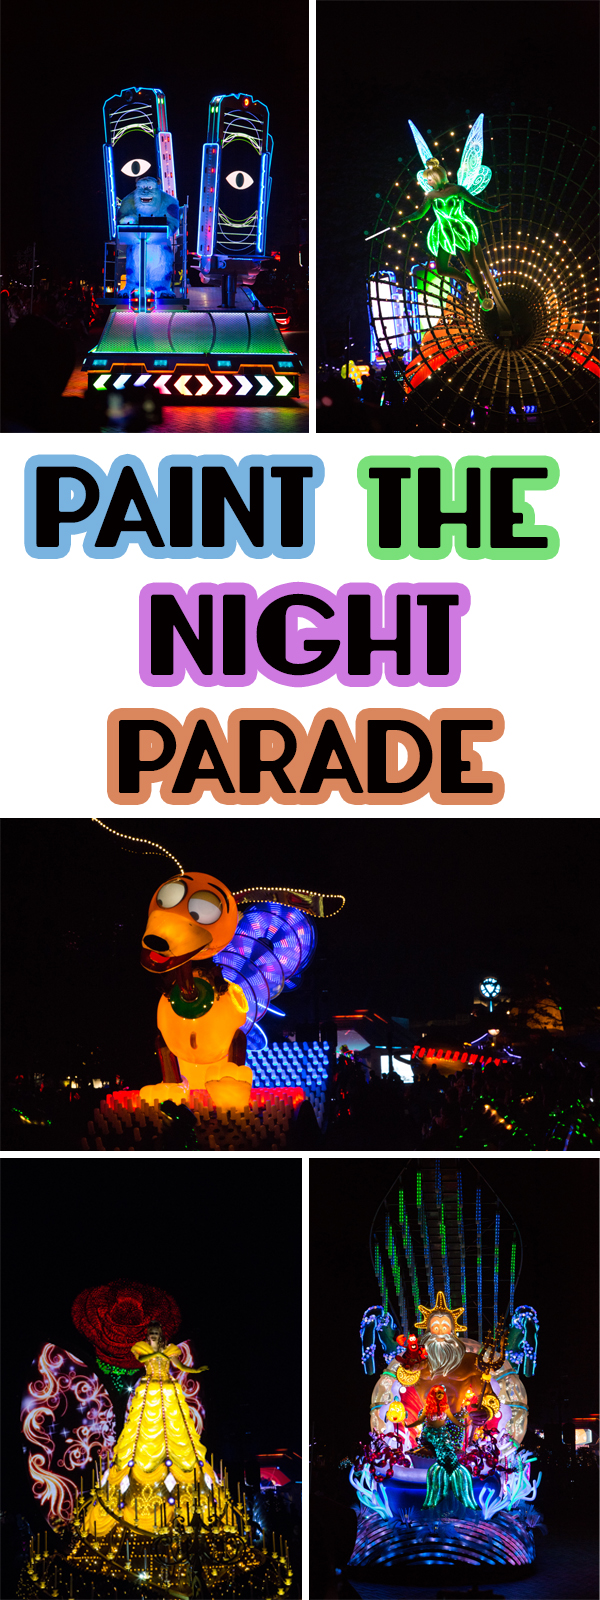 Everything you need to know about the Paint the Night Parade at Hong Kong Disneyland